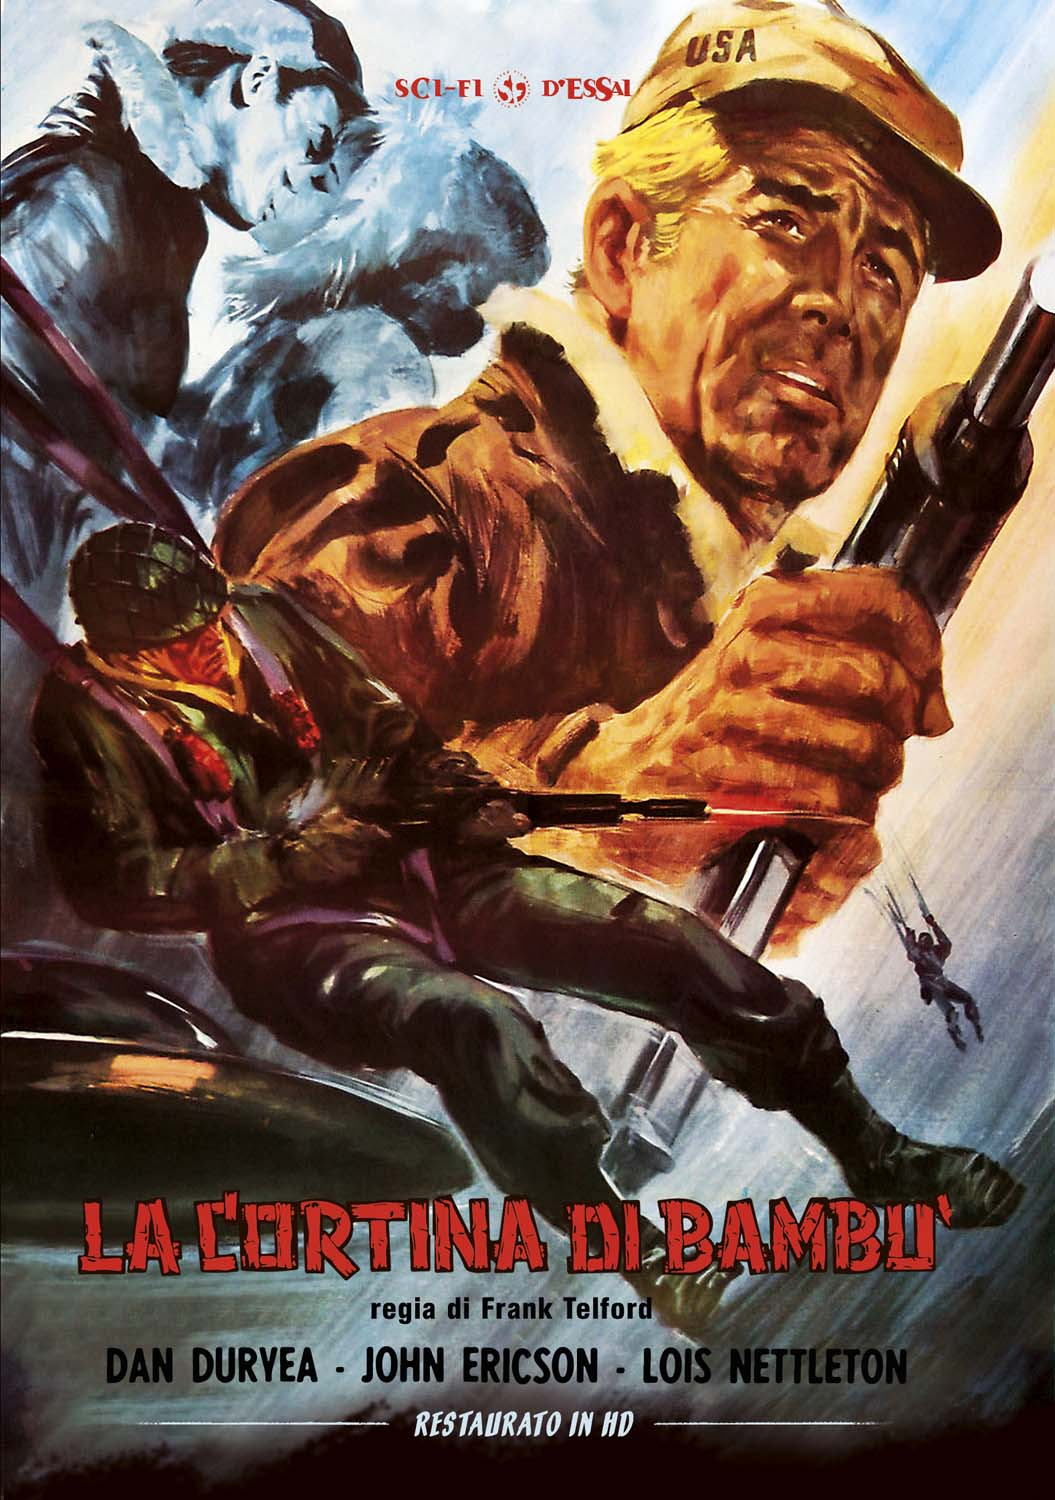 LA CORTINA DI BAMBU' (RESTAURATO IN HD) (DVD)